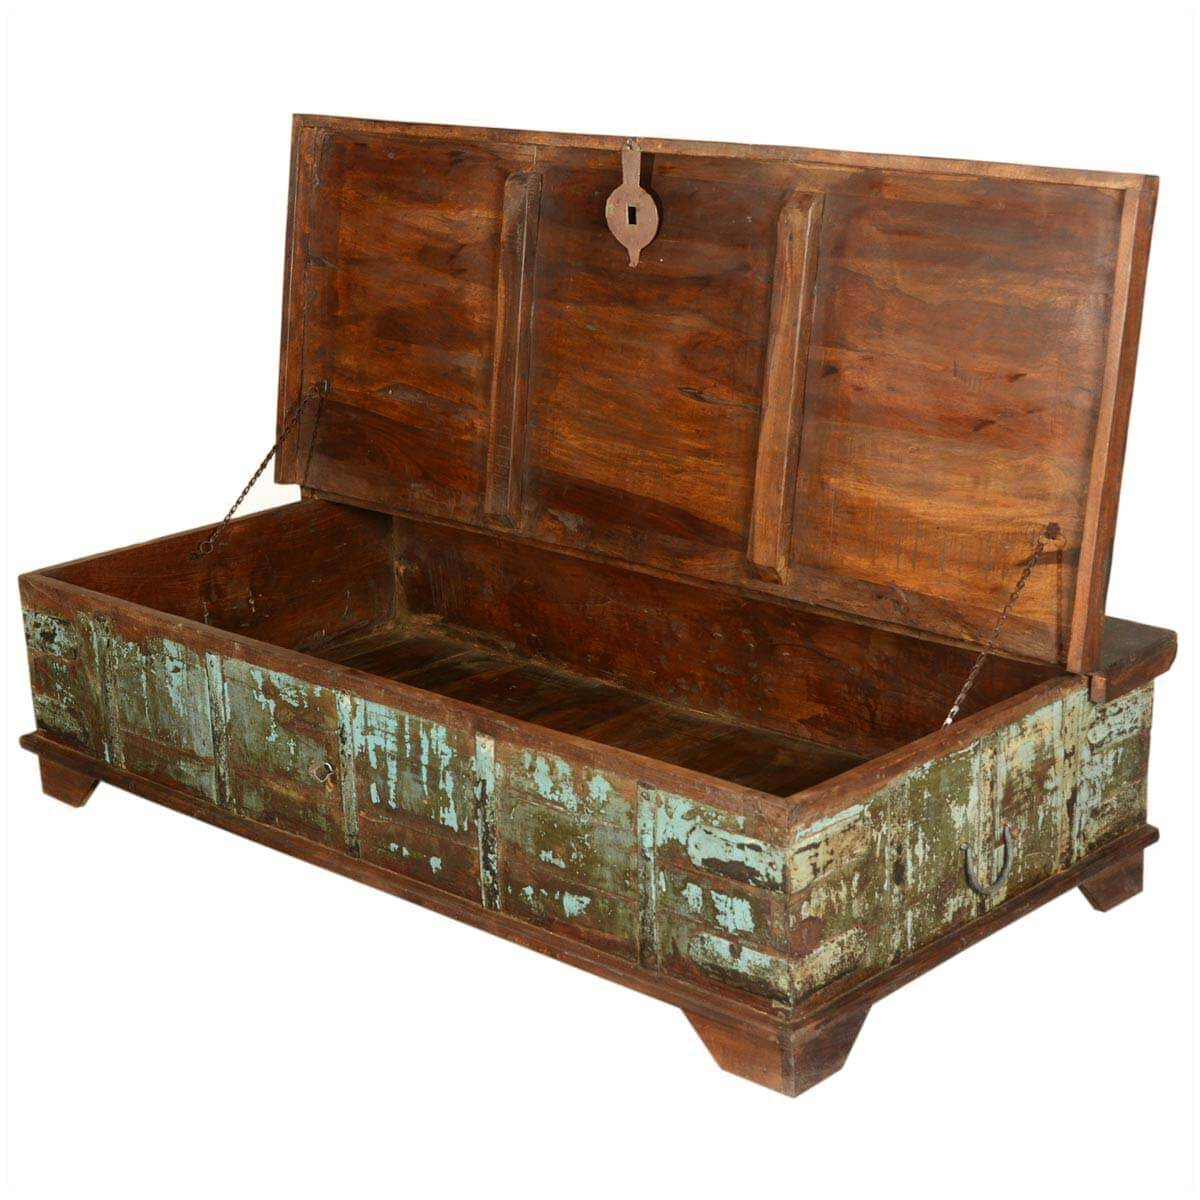 Mediterranean Rustic Reclaimed Wood Storage Trunk Coffee Table